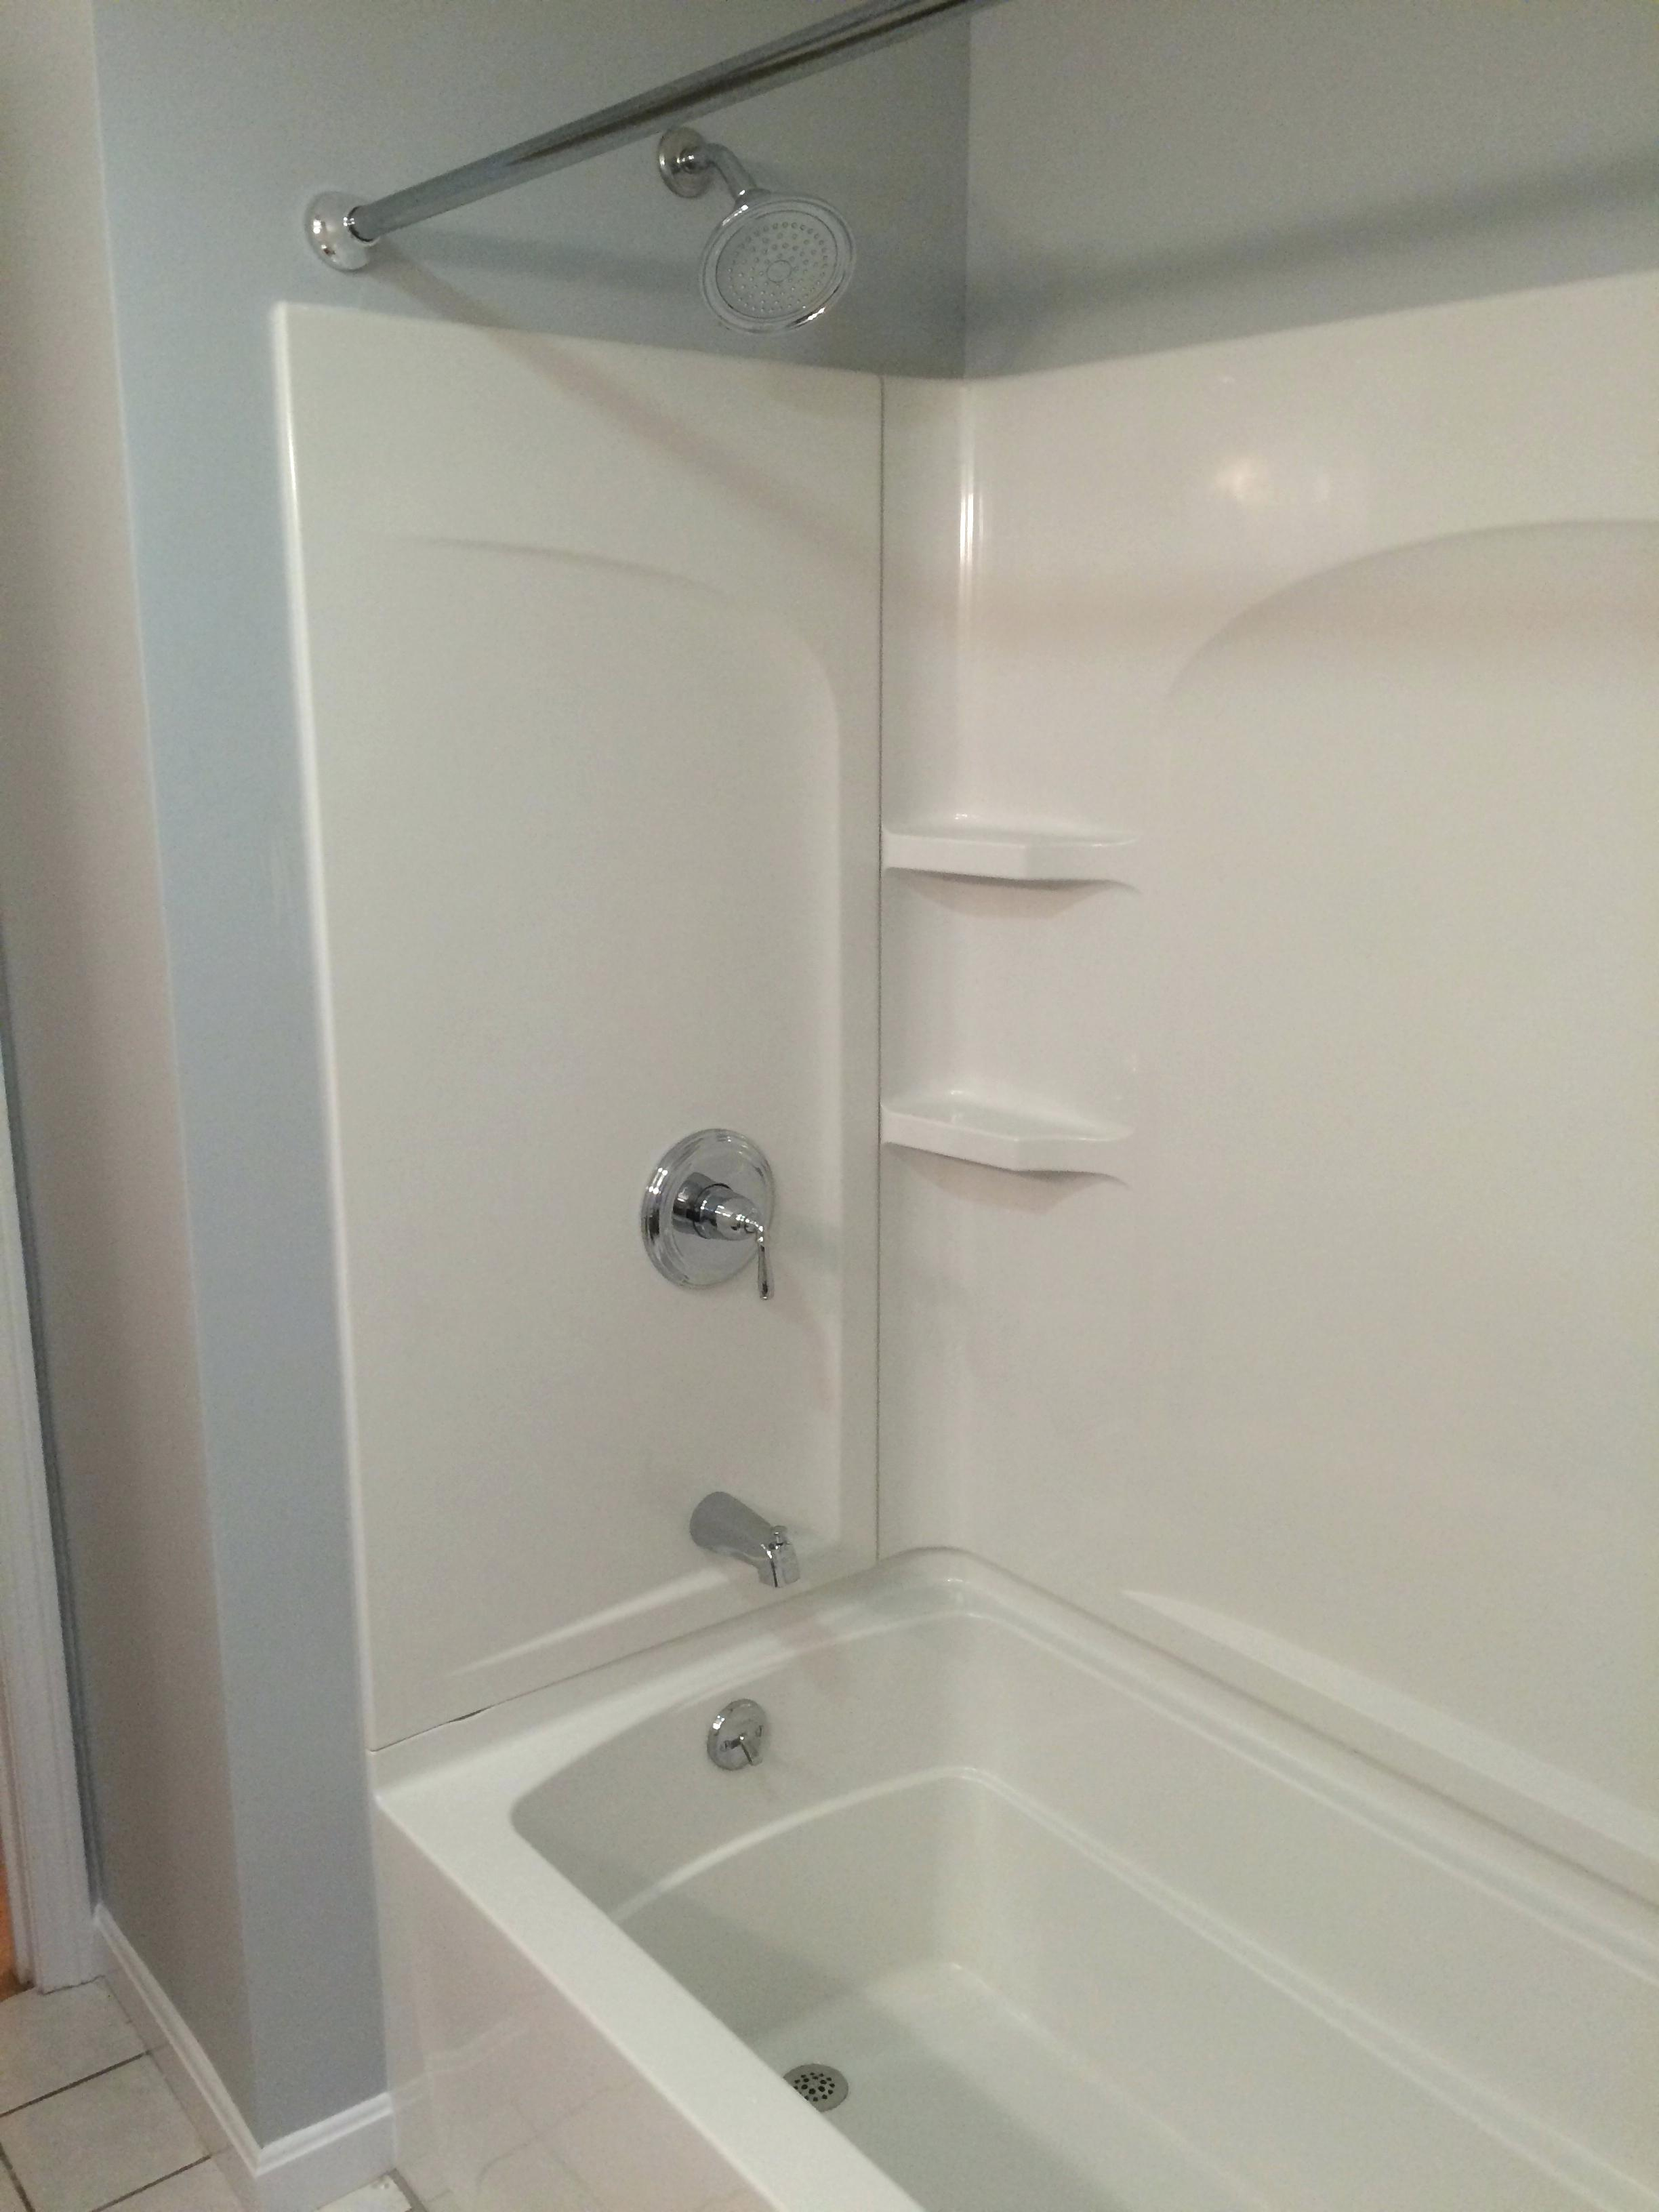 Articles With Sterling Bath Faucet Repair Tag Sterling Bathtub Within  Measurements 2448 X 3264